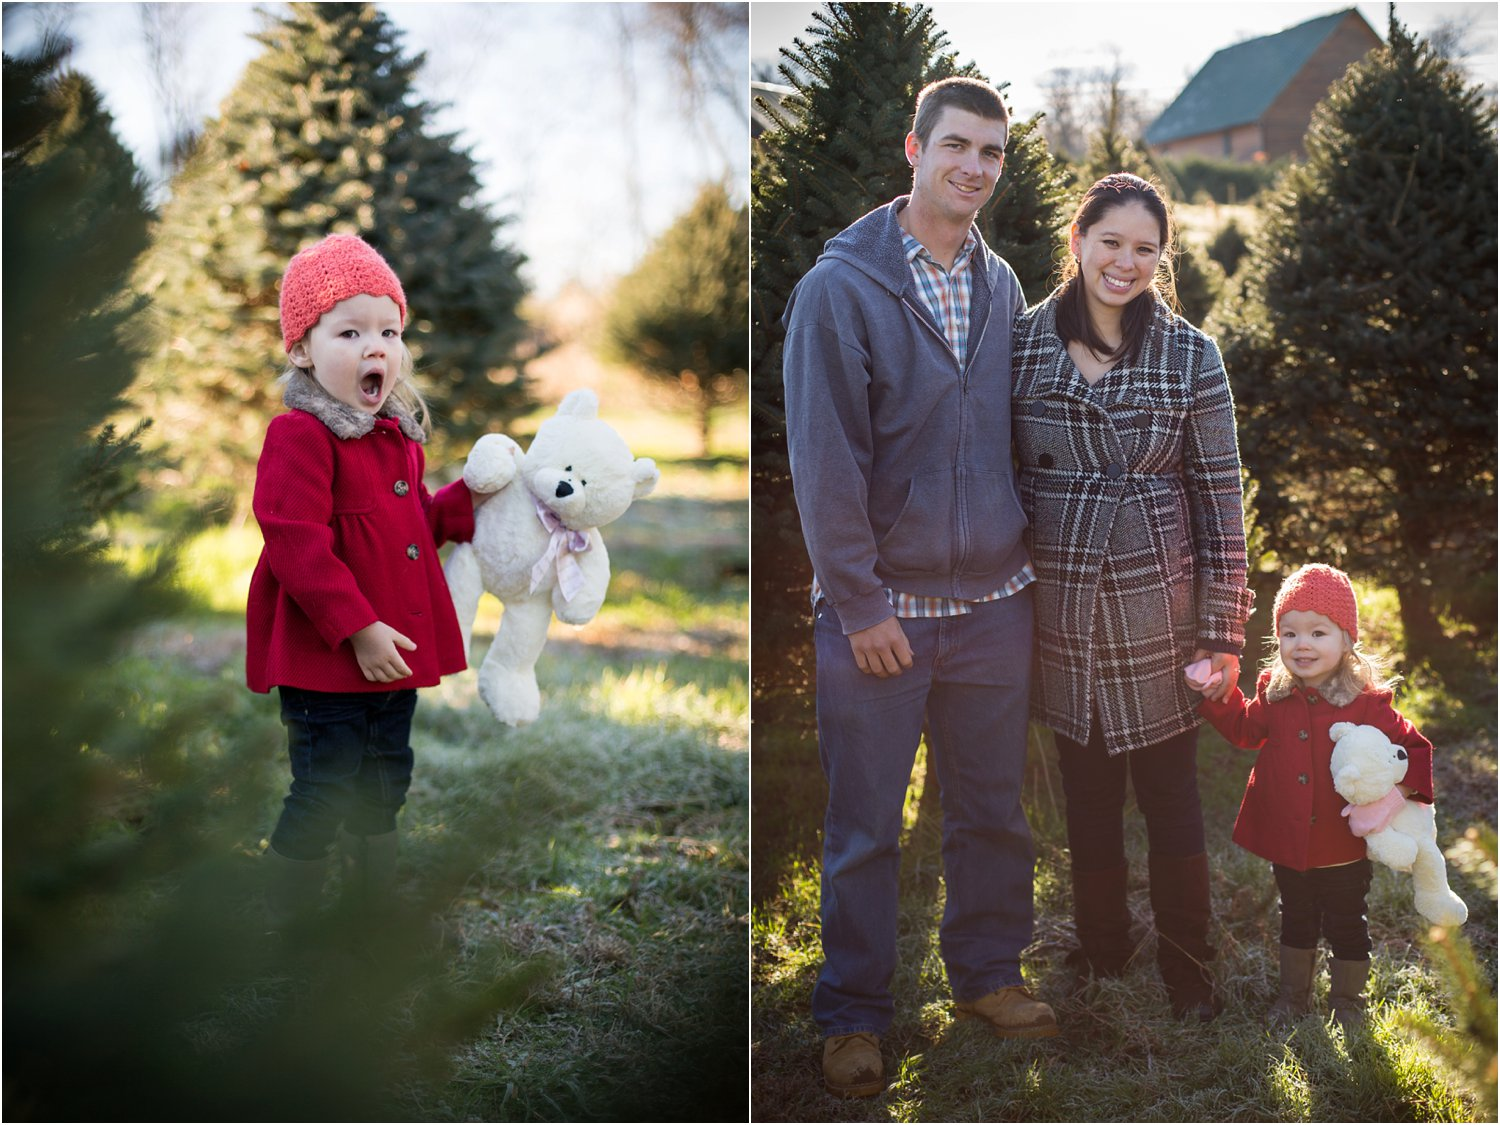 Moose_Apple_Chrismas_Tree_Farm_Family_Portraits_0007.jpg